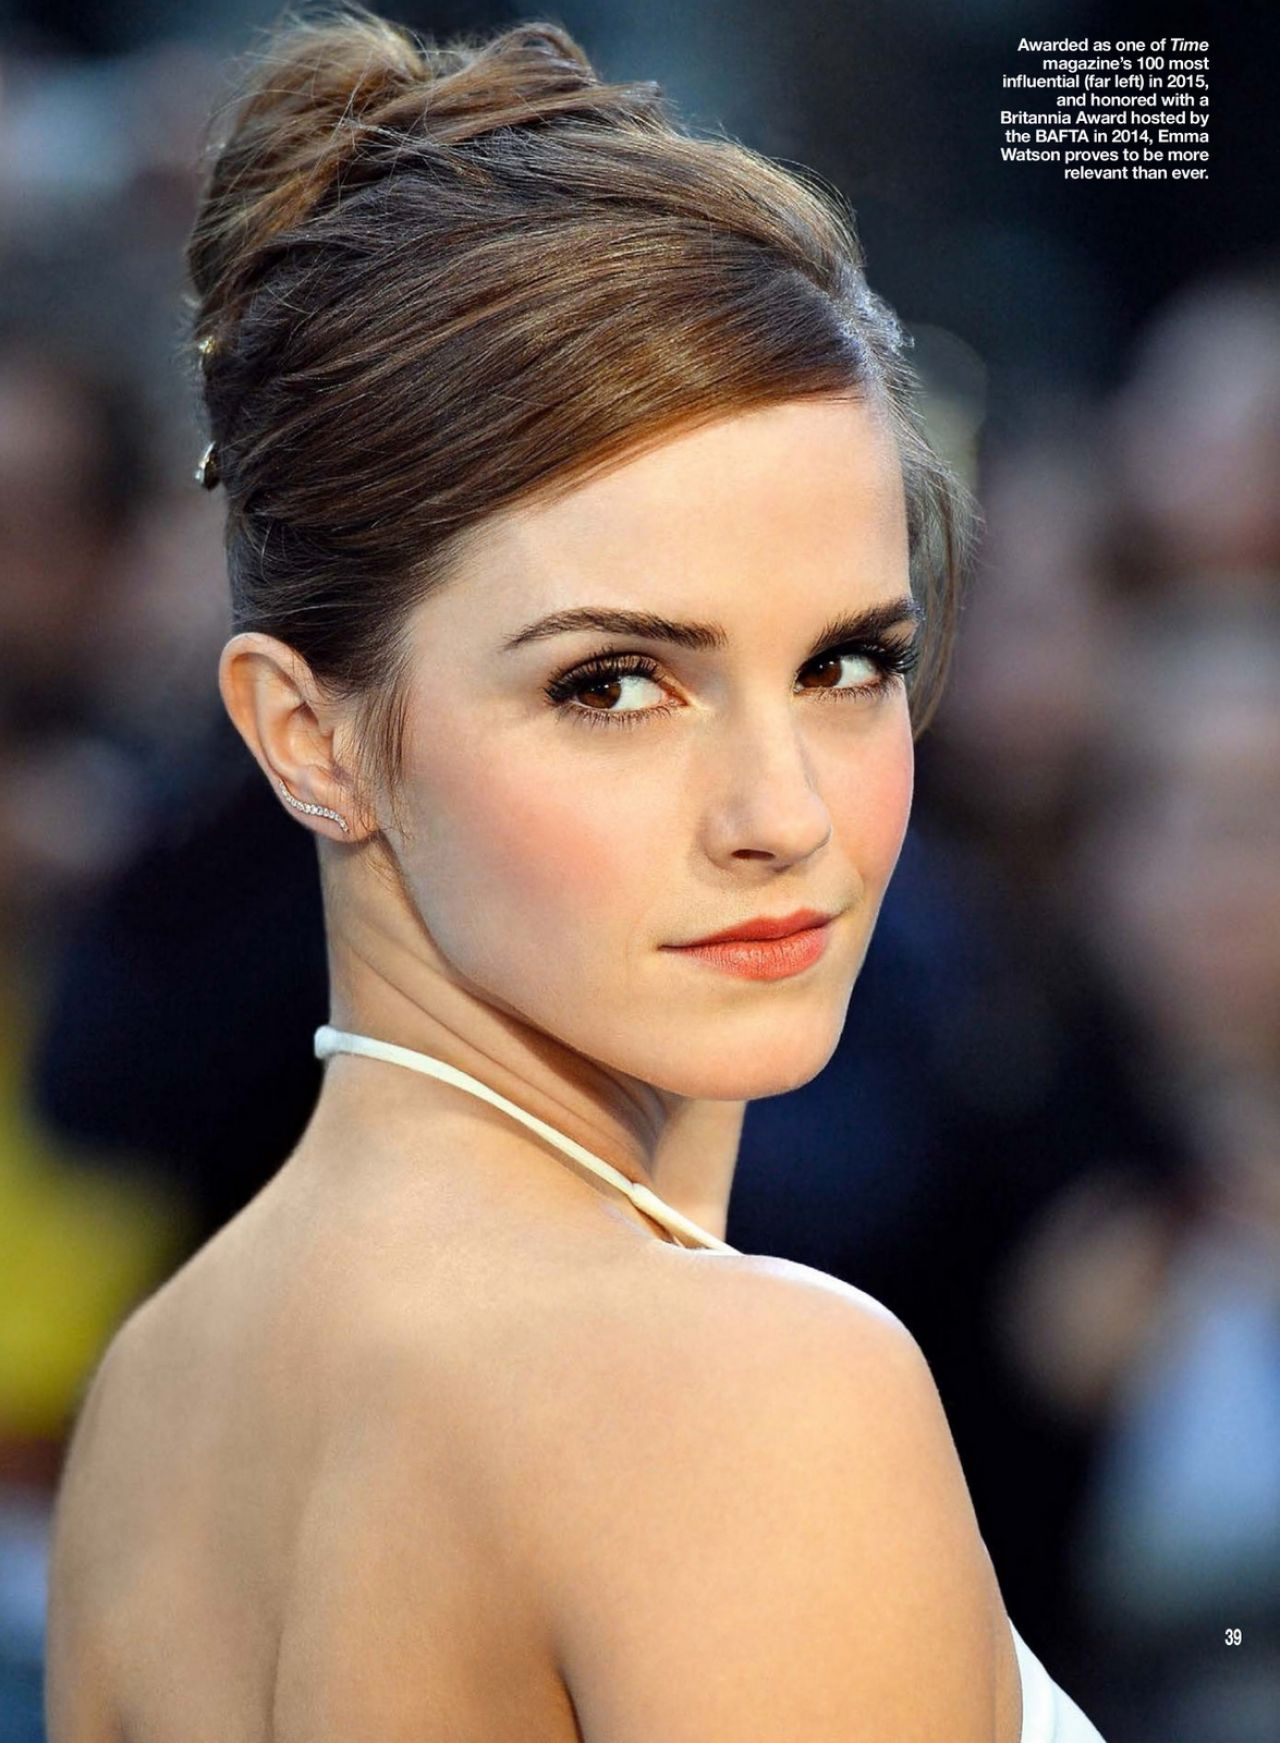 emma watson 1 day ago  emma watson is in talks to join greta gerwig's star-studded remake of little women.